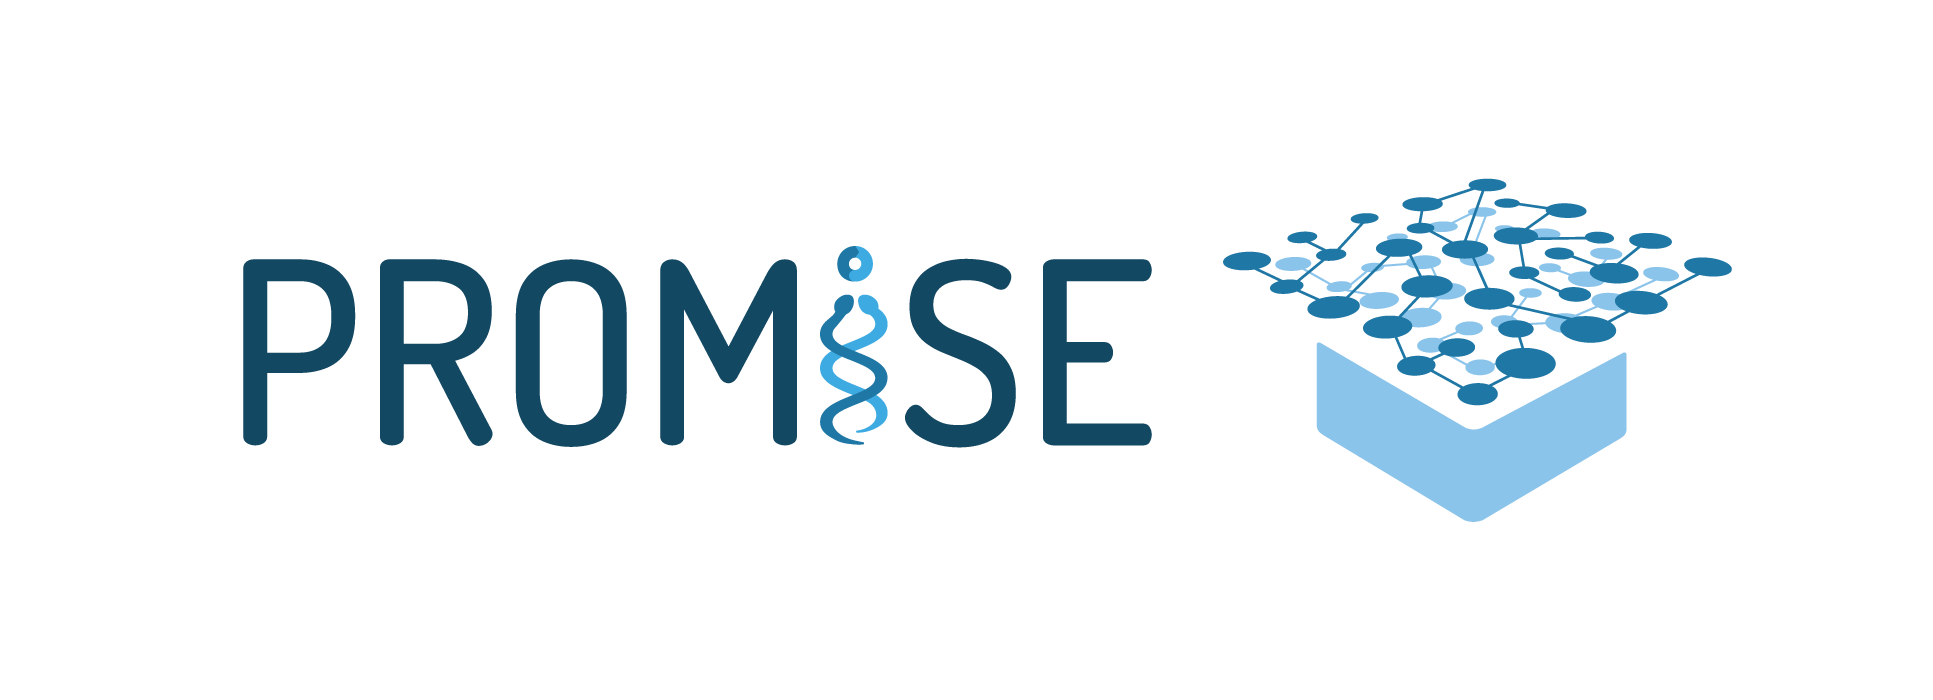 Promise-logo-transparent-background